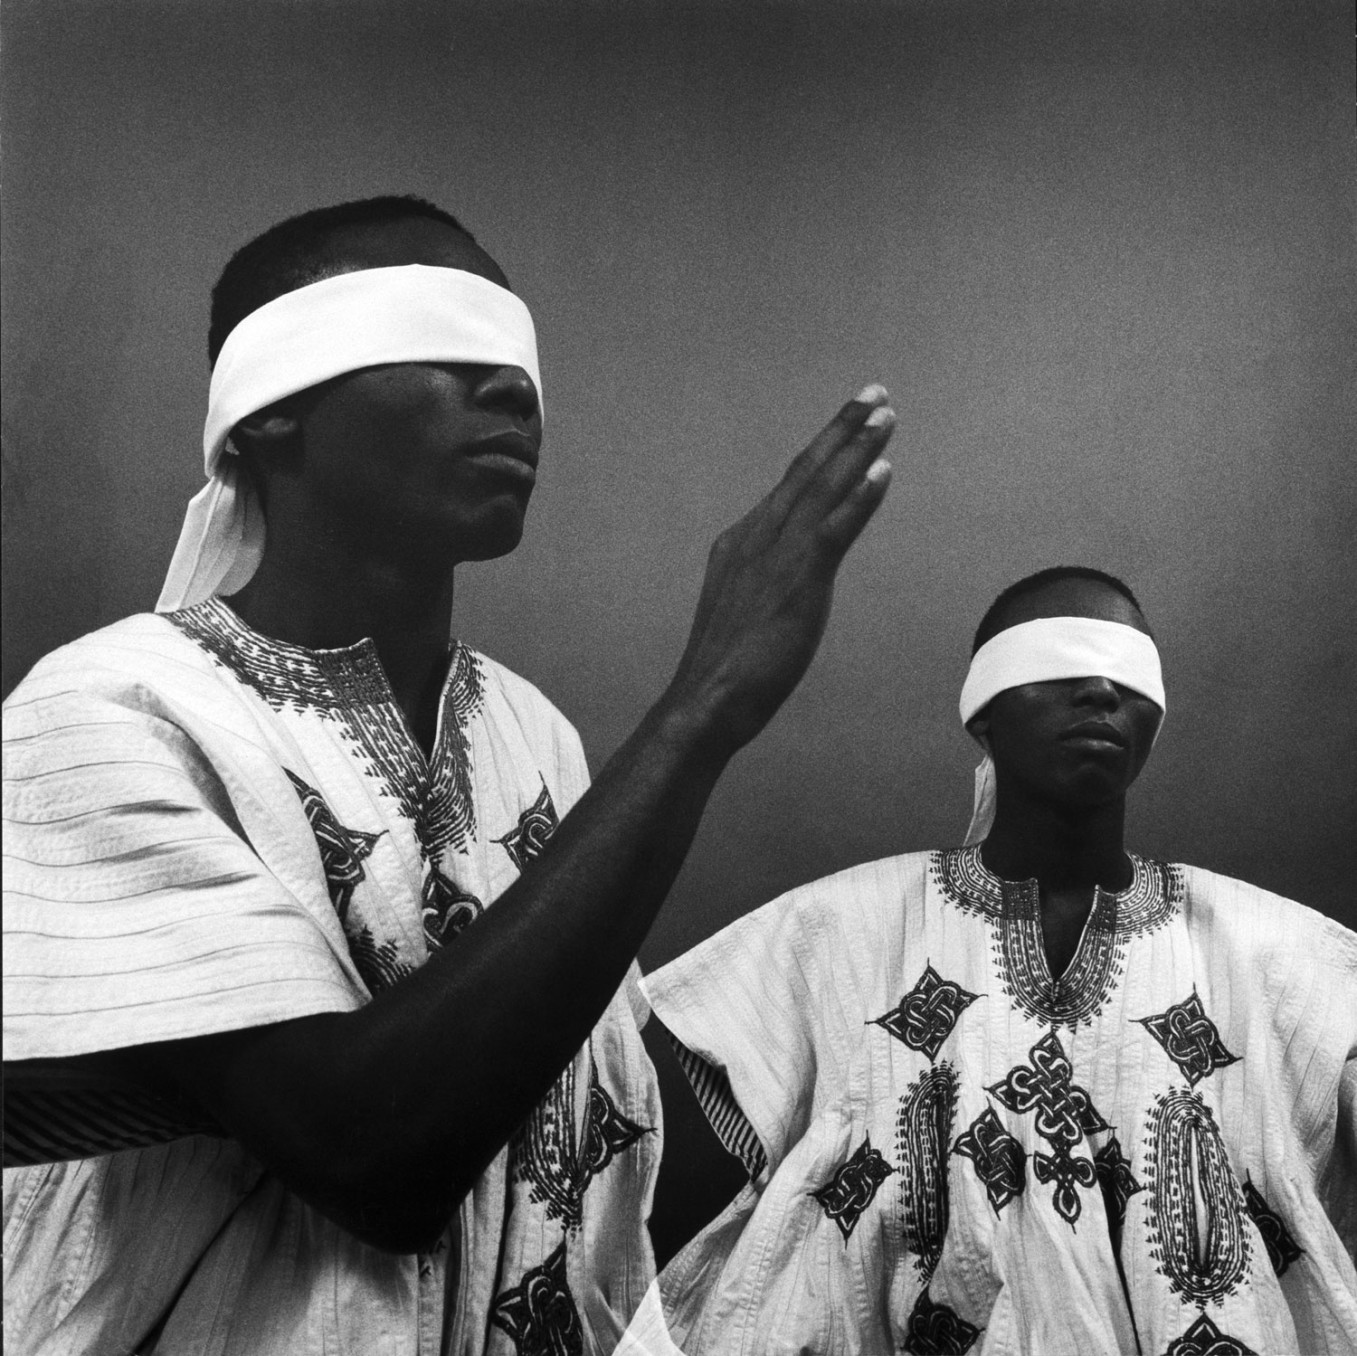 Rotimi Fani-Kayode, The Way, c. 1987-1989/2018, Gelatin silver print, 25.1 x 25.2 cm, 9 7/8 x 9 15/16 in, Framed: 44.8 x 42.2 cm, 17 5/8 x 16 5/8 in